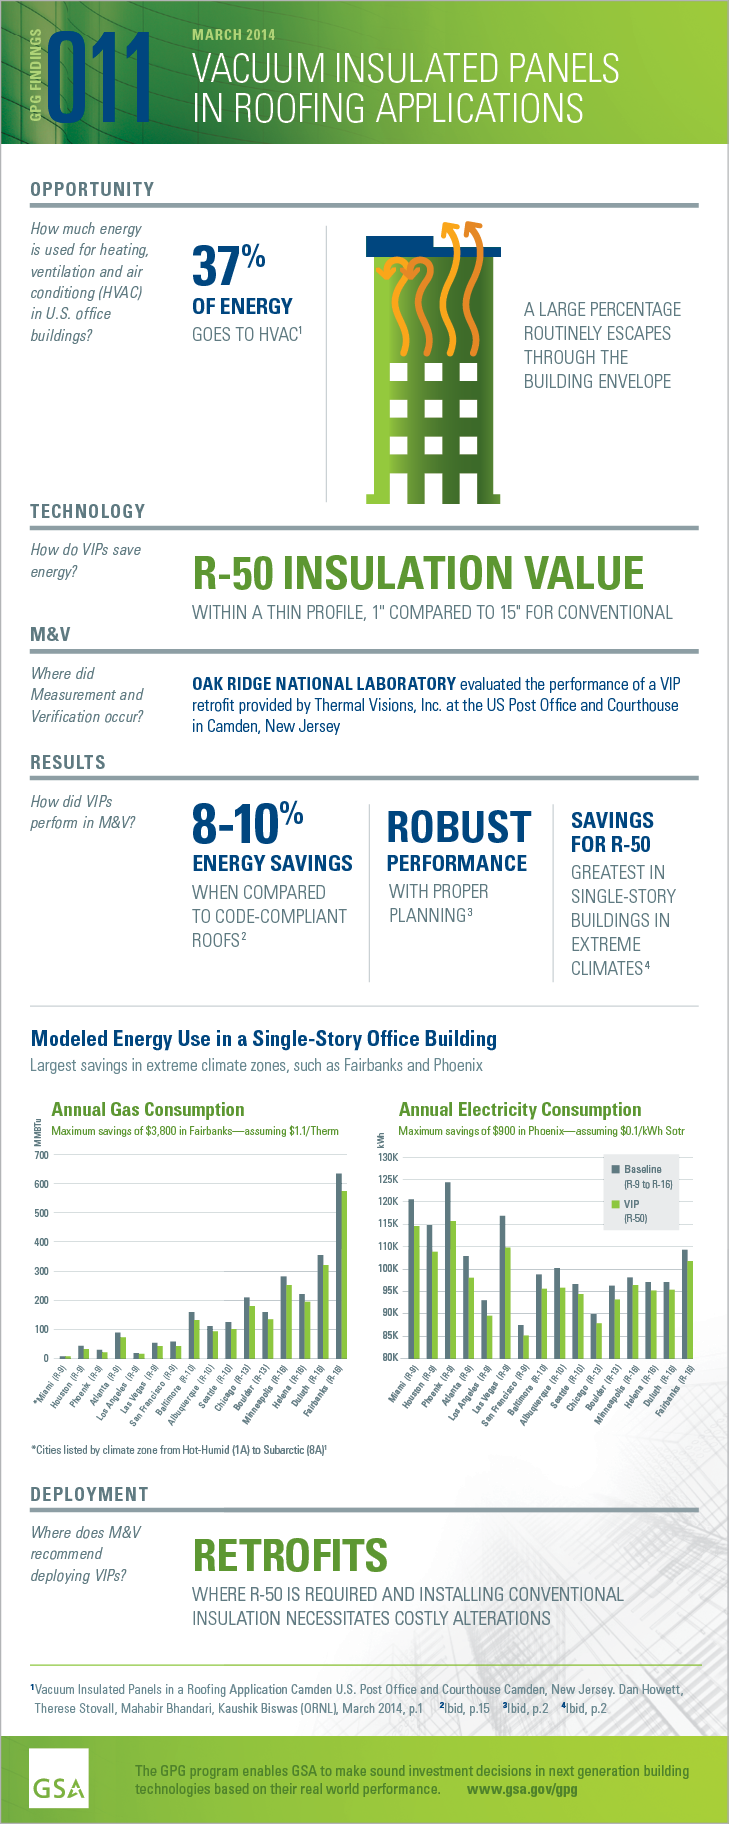 "GPG Findings 011, Vacuum Insulated Panels In Roofing Applications. Opportunity: How much energy is used for heating, ventilation and air conditioning (HVAC) in U.S. office buildings? 37% of energy goes to HVAC. A large percentage routinely escapes through the building envelope. Technology: How do VIPs save energy? R-50 insulation value within a thin profile, 1"" compared to 15"" for conventional. Measurement and Verification: Where did M and V occur? Oak Ridge National Laboratory evaluated the performance of a VIP retrofit at the US Post Office and Courthouse in Camden, New Jersey. Results: How did VIPs perform in M and V? 8-10% energy savings when compared to code-compliant roofs. Robust performance with proper planning. Savings for R-50 greatest in single-story buildings in extreme climates. Deployment: Where does M and V recommending deploying VIPs? Retrofits where R-50 is required and installing conventional insulation necessitates costly alterations."